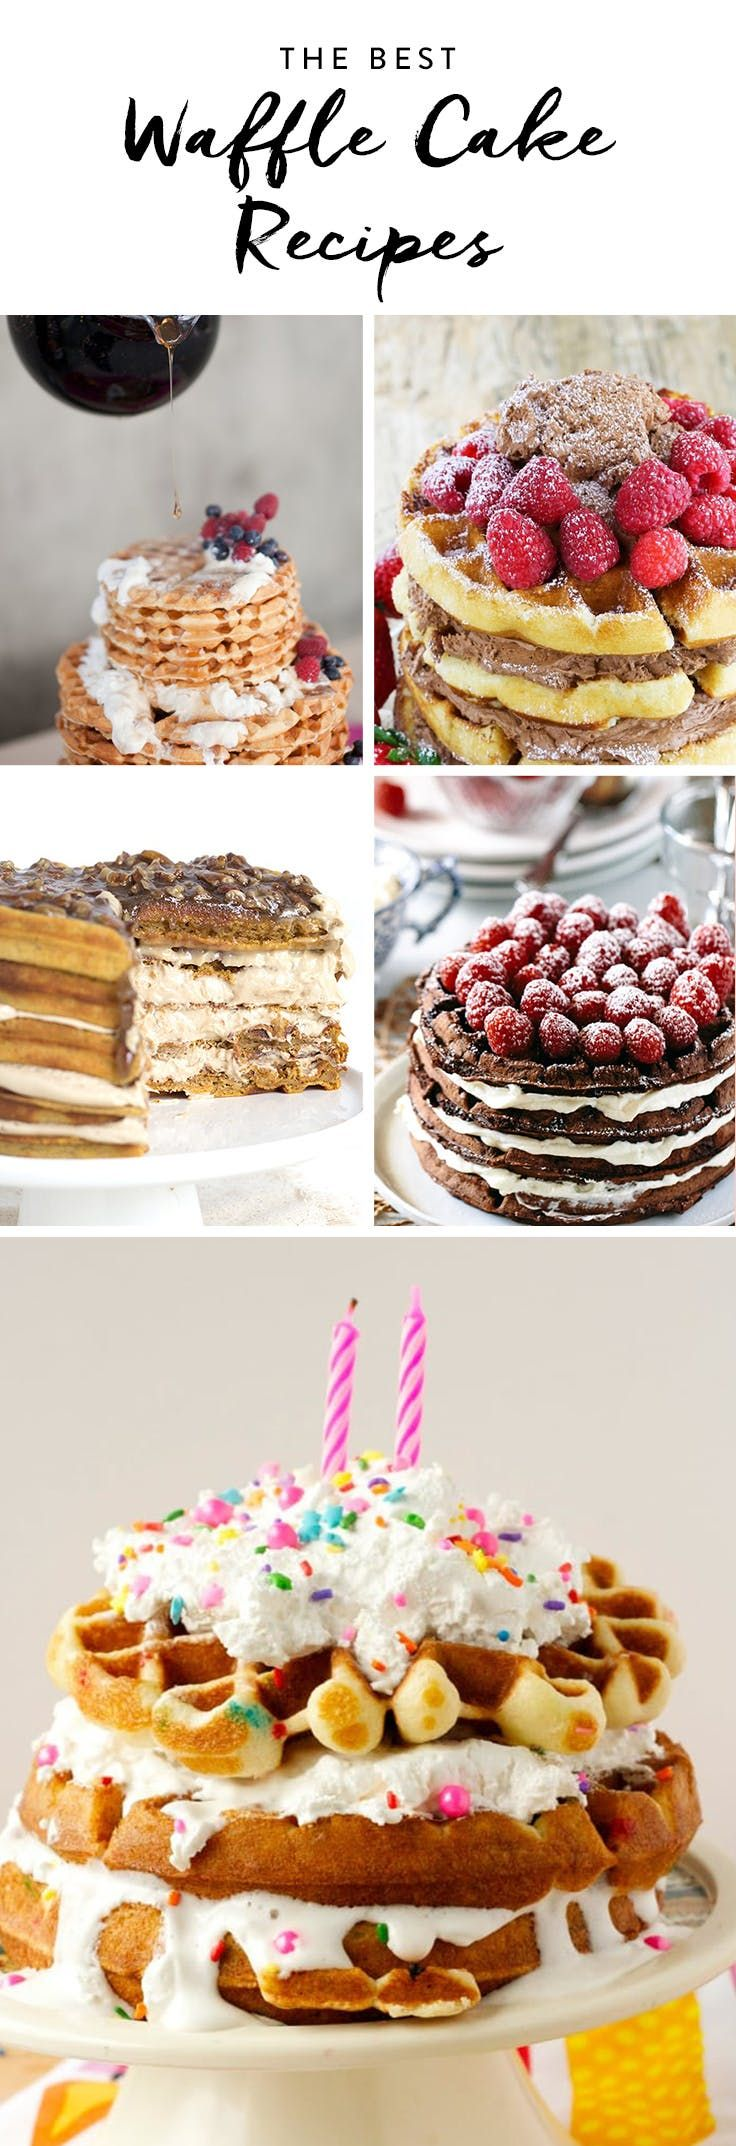 Waffle Cakes Are the Next Big Dessert Trend (and Surprisingly Easy to Make) via @PureWow